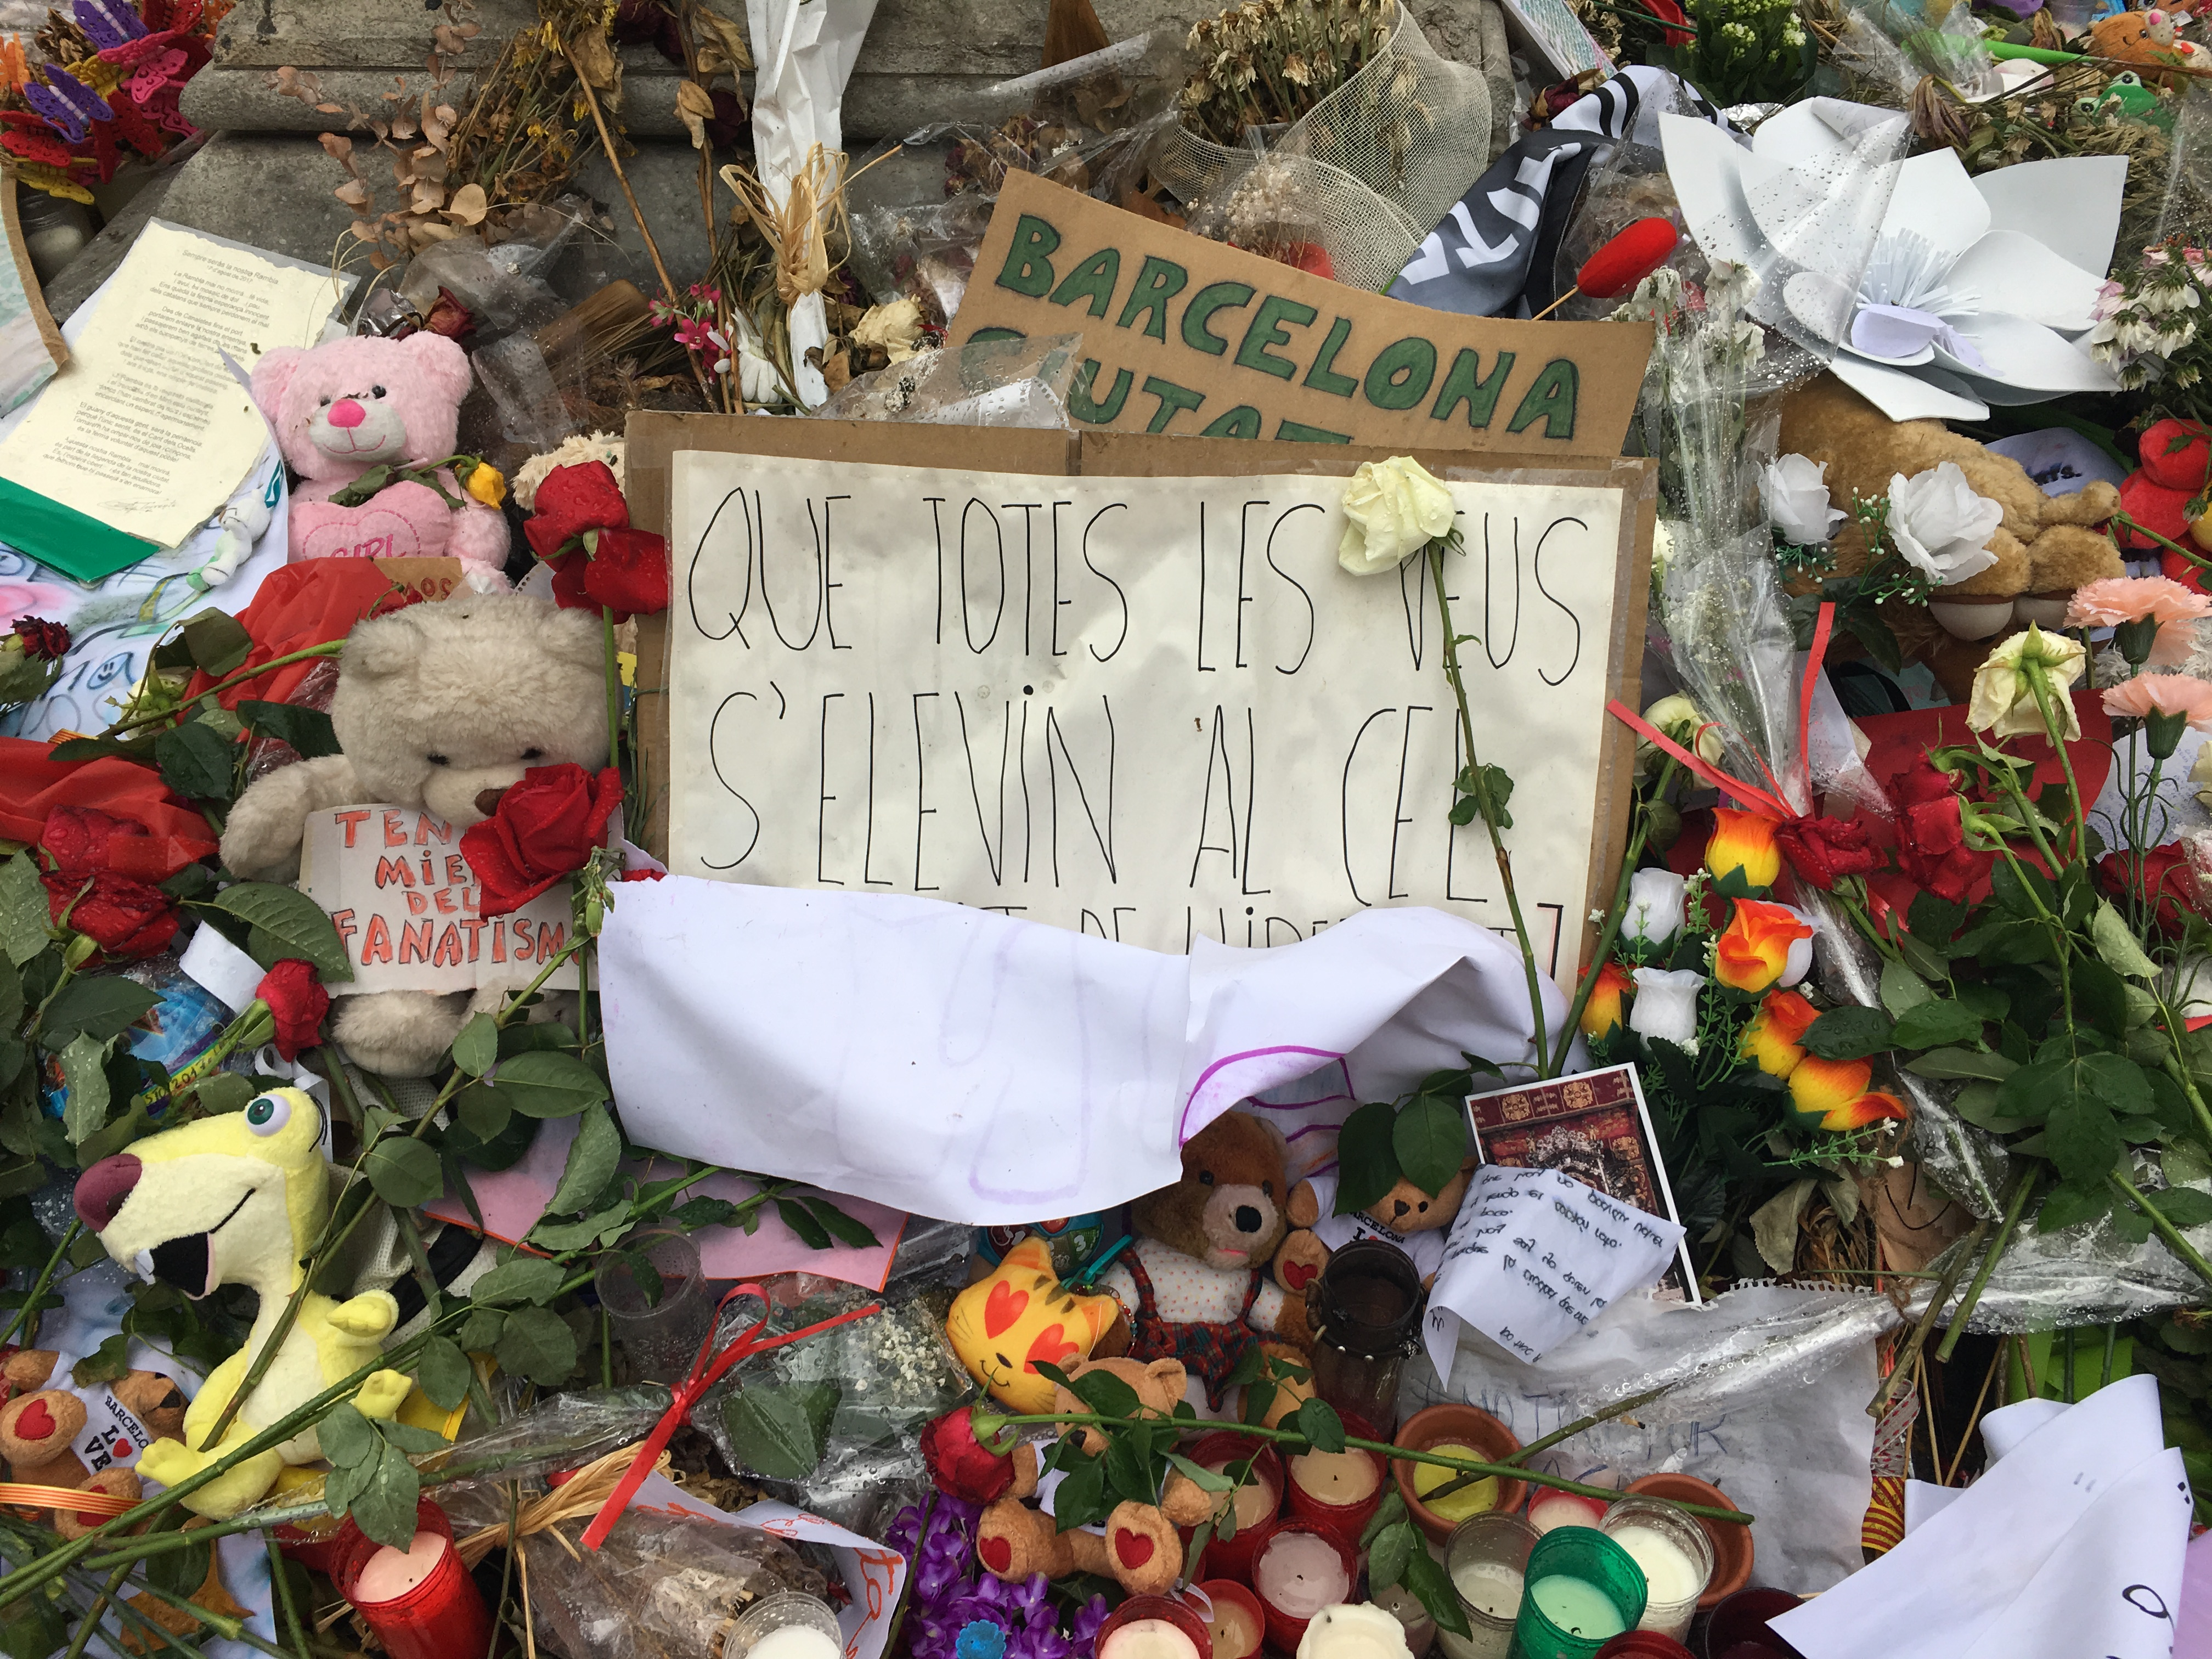 image of objects in the spontaneous memorials in Barcelona after the 17th August 2017 terrorist attack